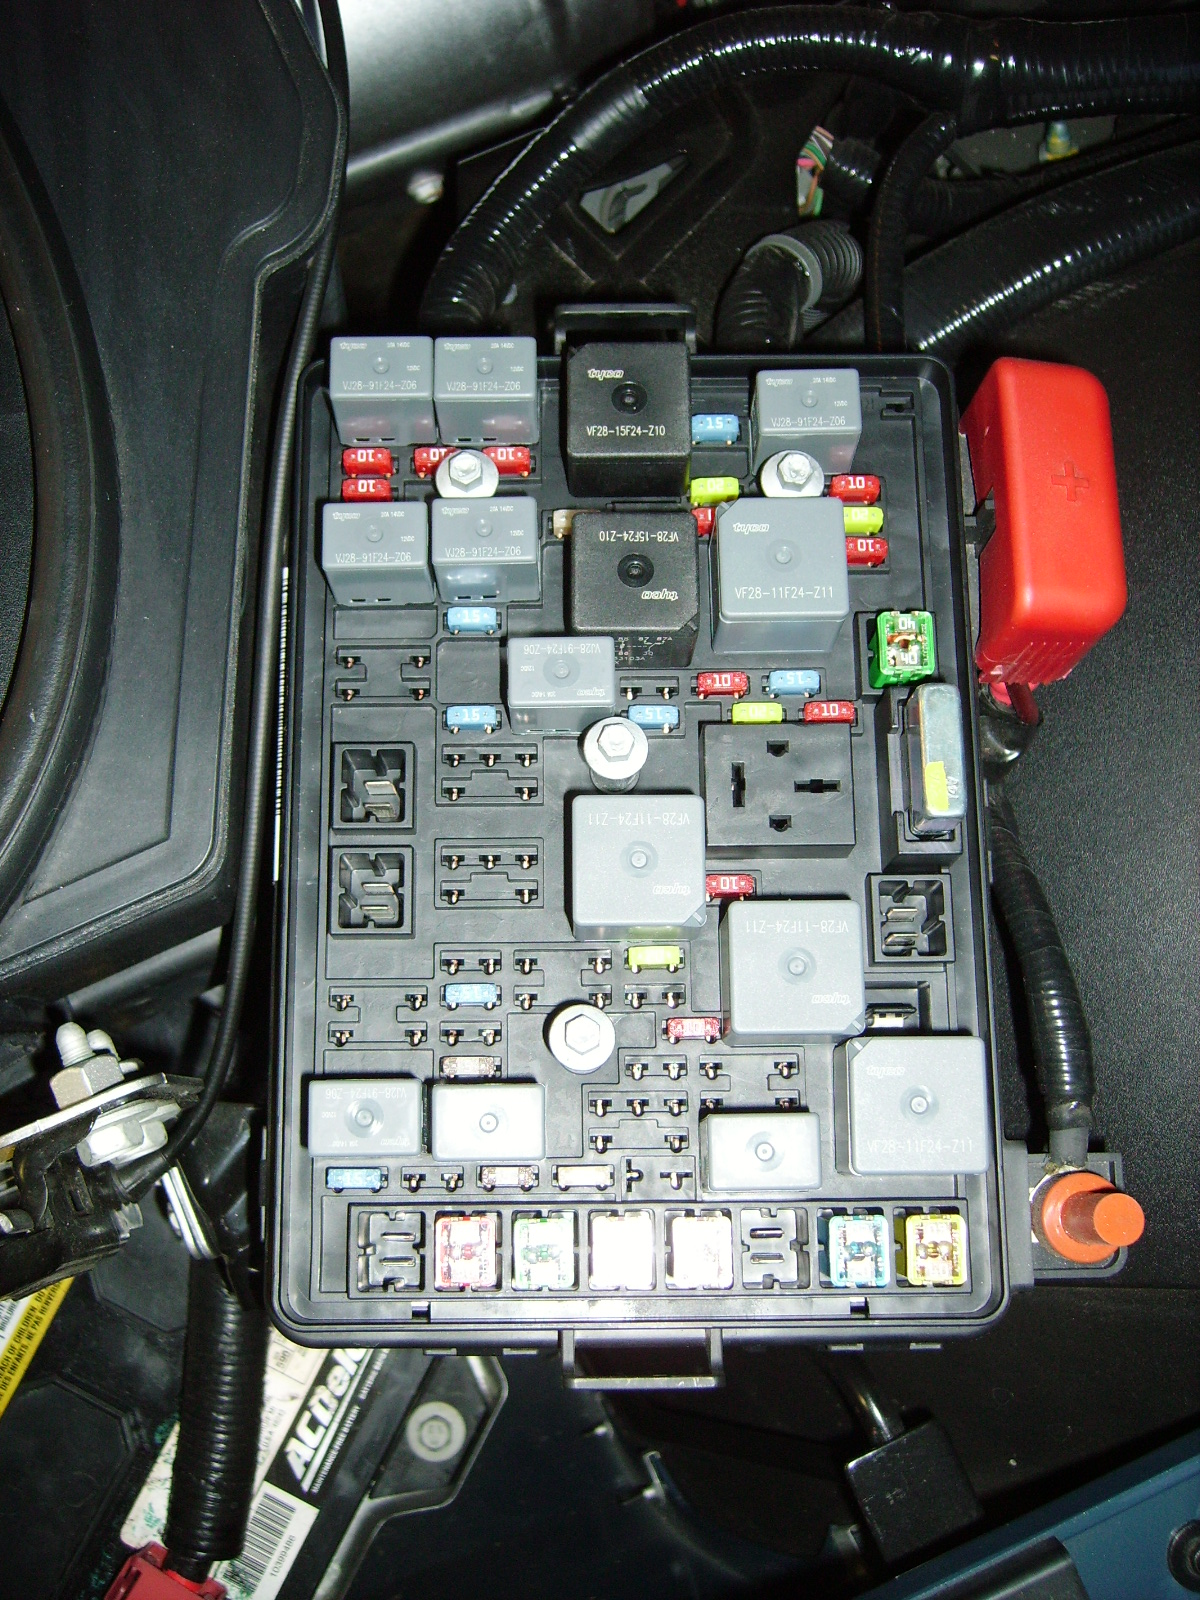 saturn ion fuse box 1 wiring diagram source Fuse Box For 2005 Saturn Ion